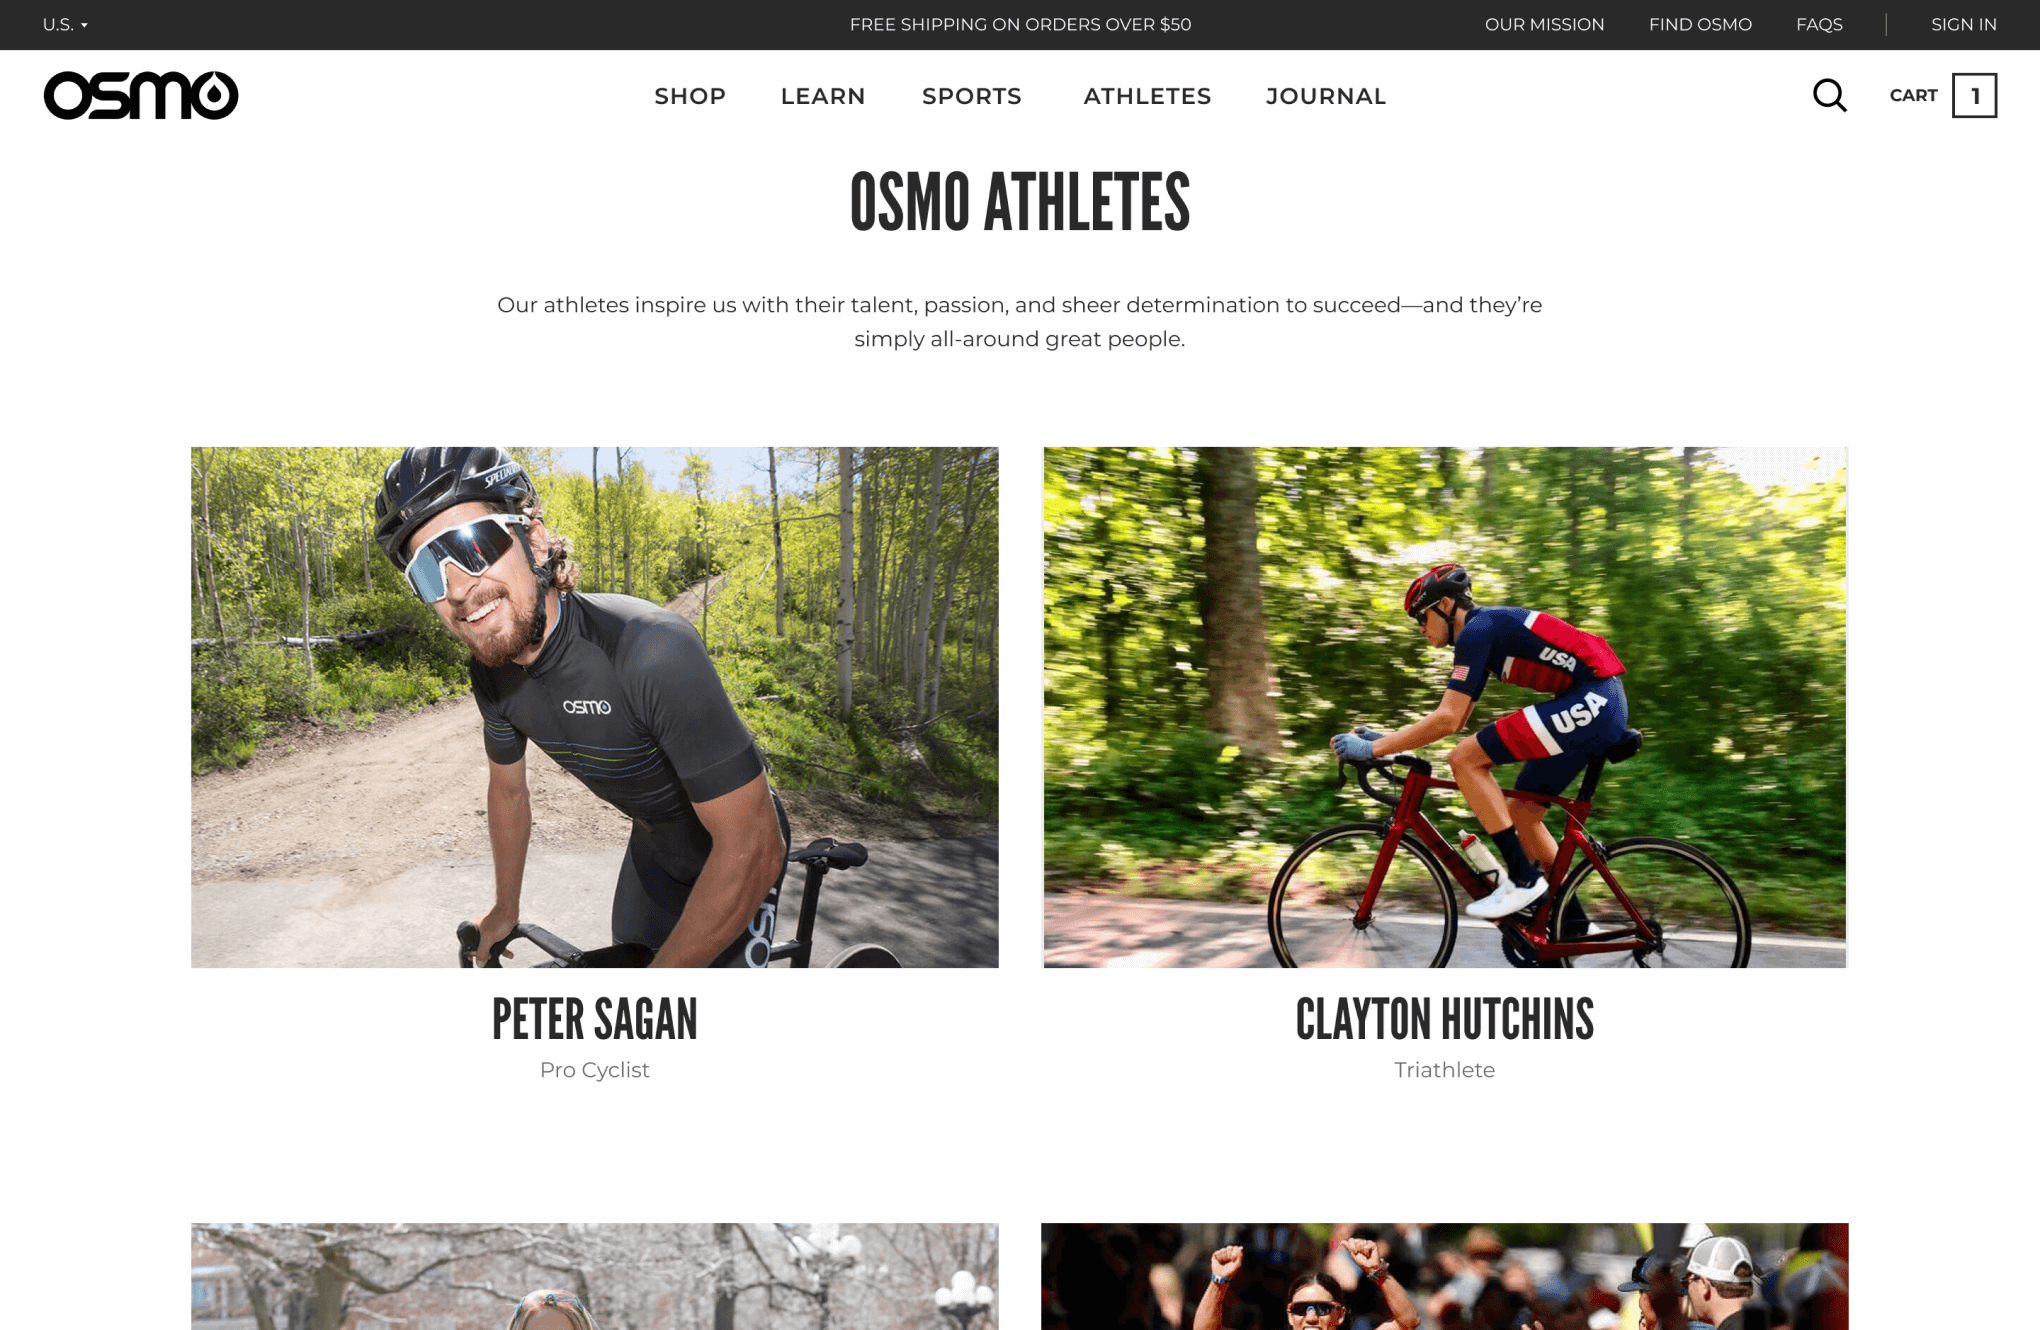 The final design for a web page featuring Osmo's sponsored athletes.